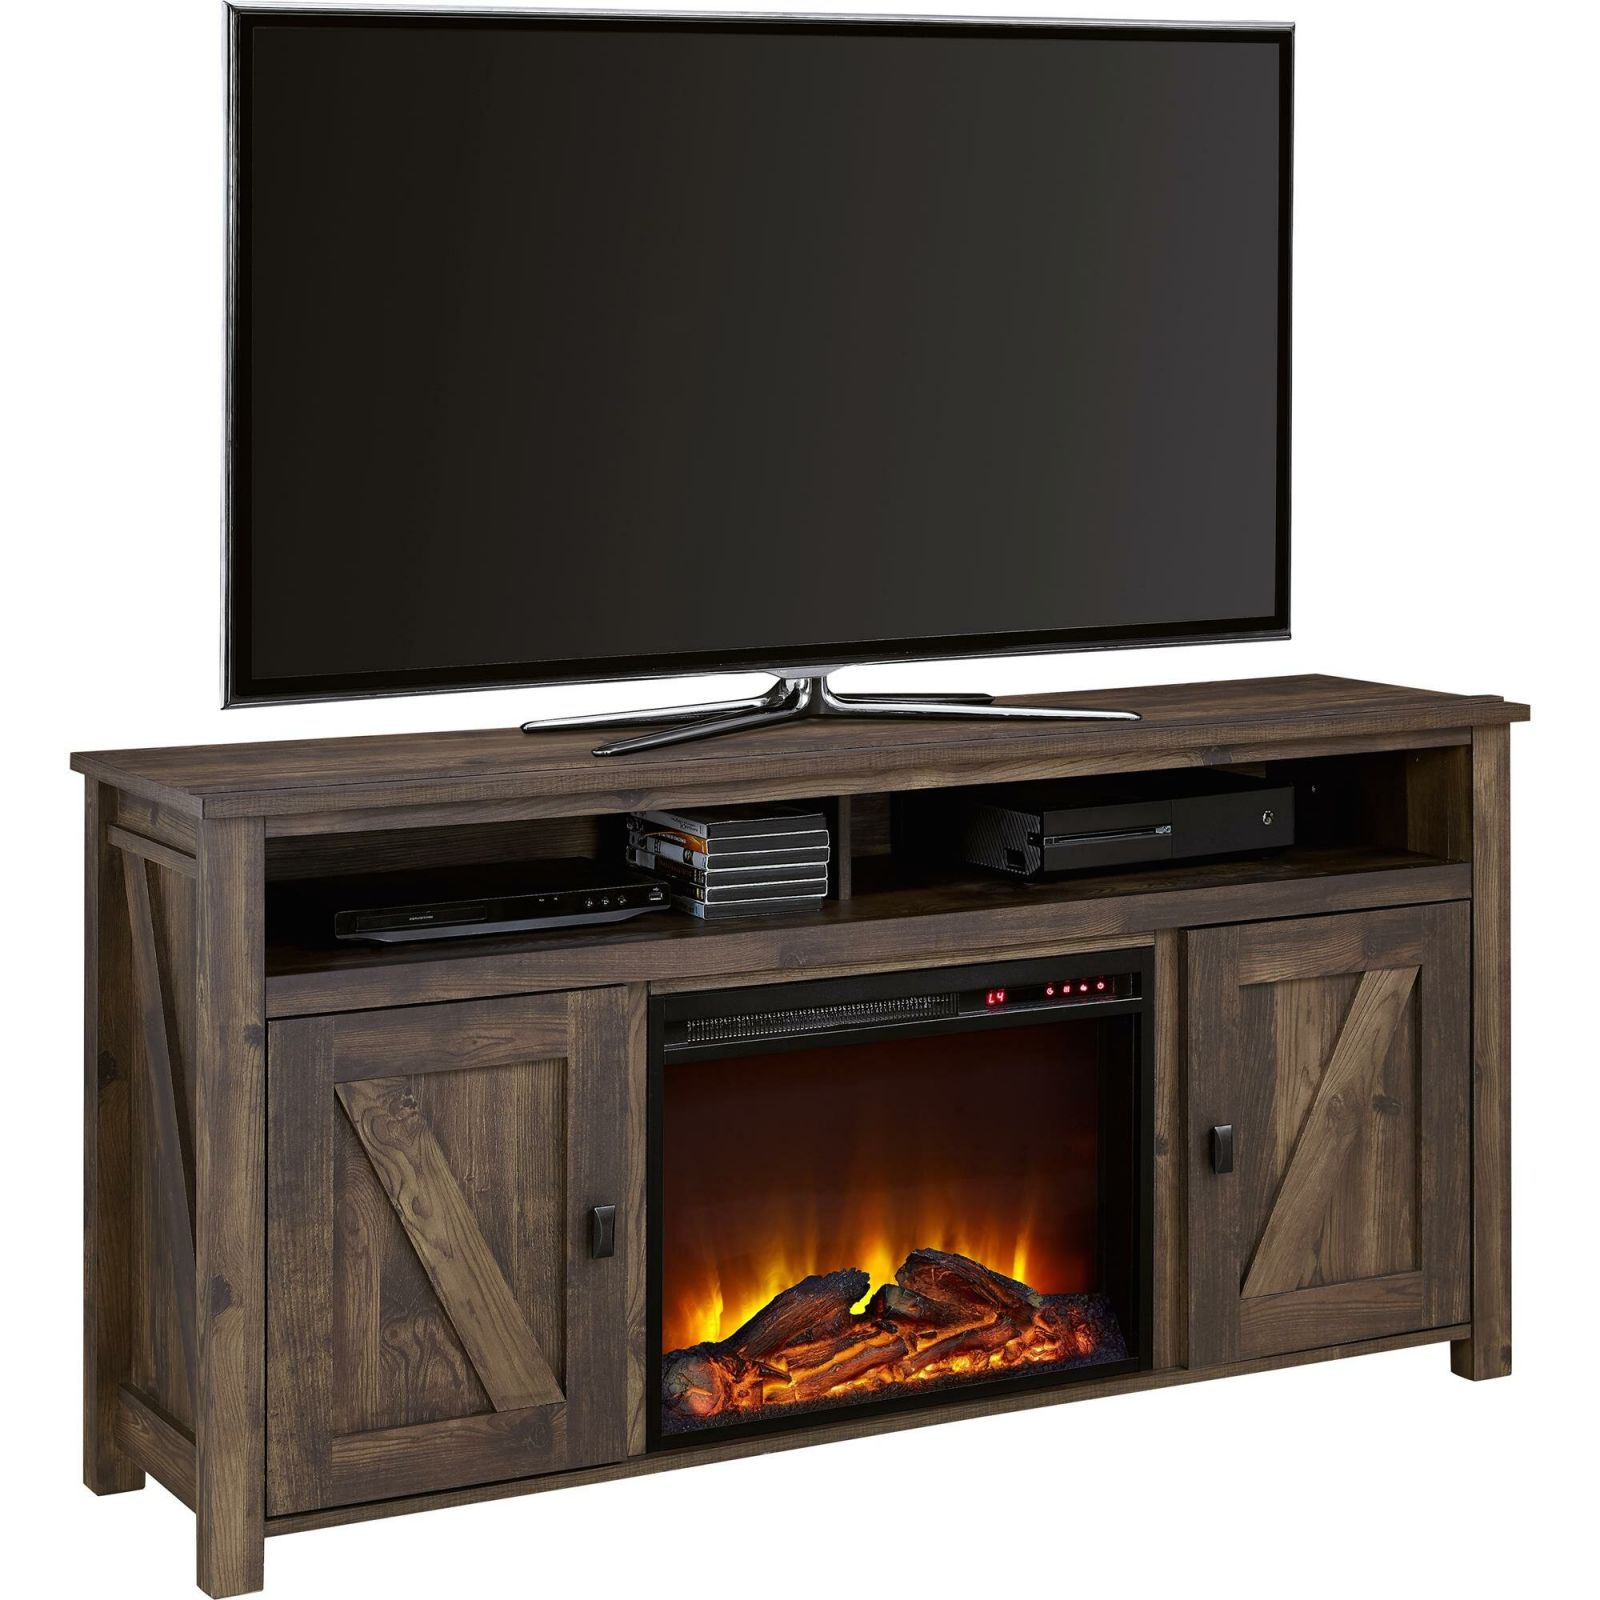 "Whittier Tv Stand For Tvs Up To 60"" With Fireplace intended for Furniture Tv Stands"